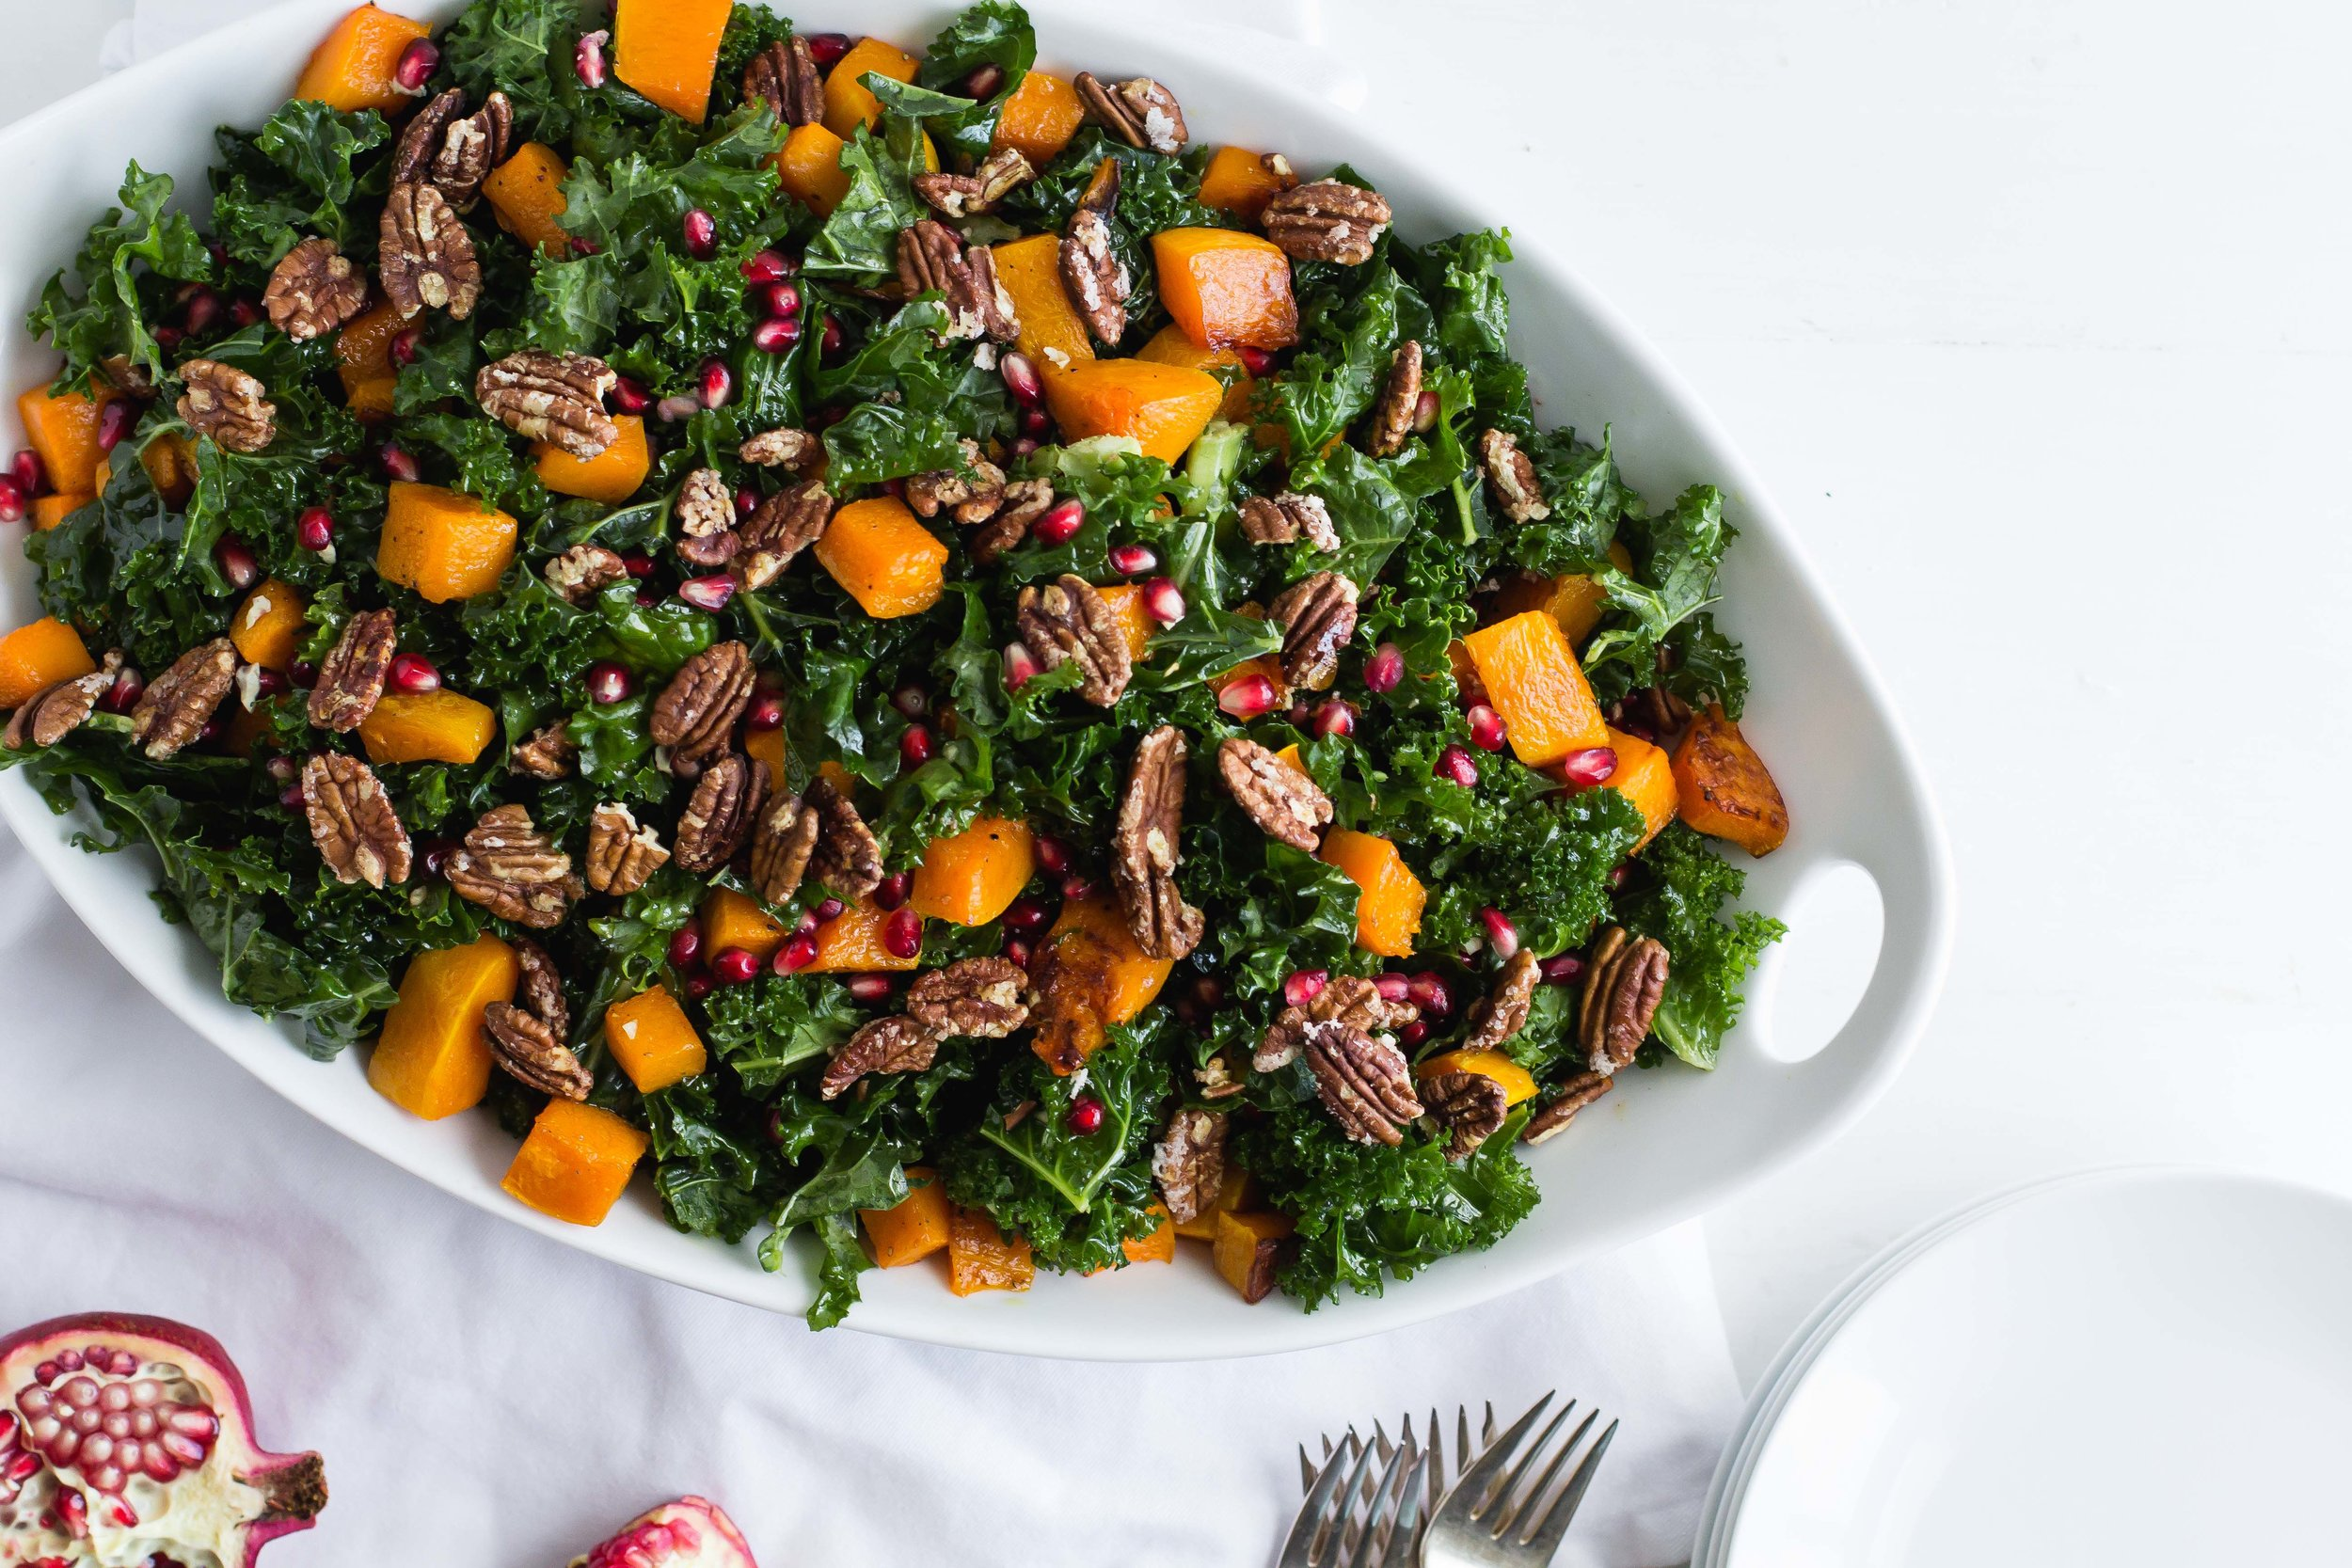 Roasted Squash + Kale Salad with Maple-Dijon Vinaigrette